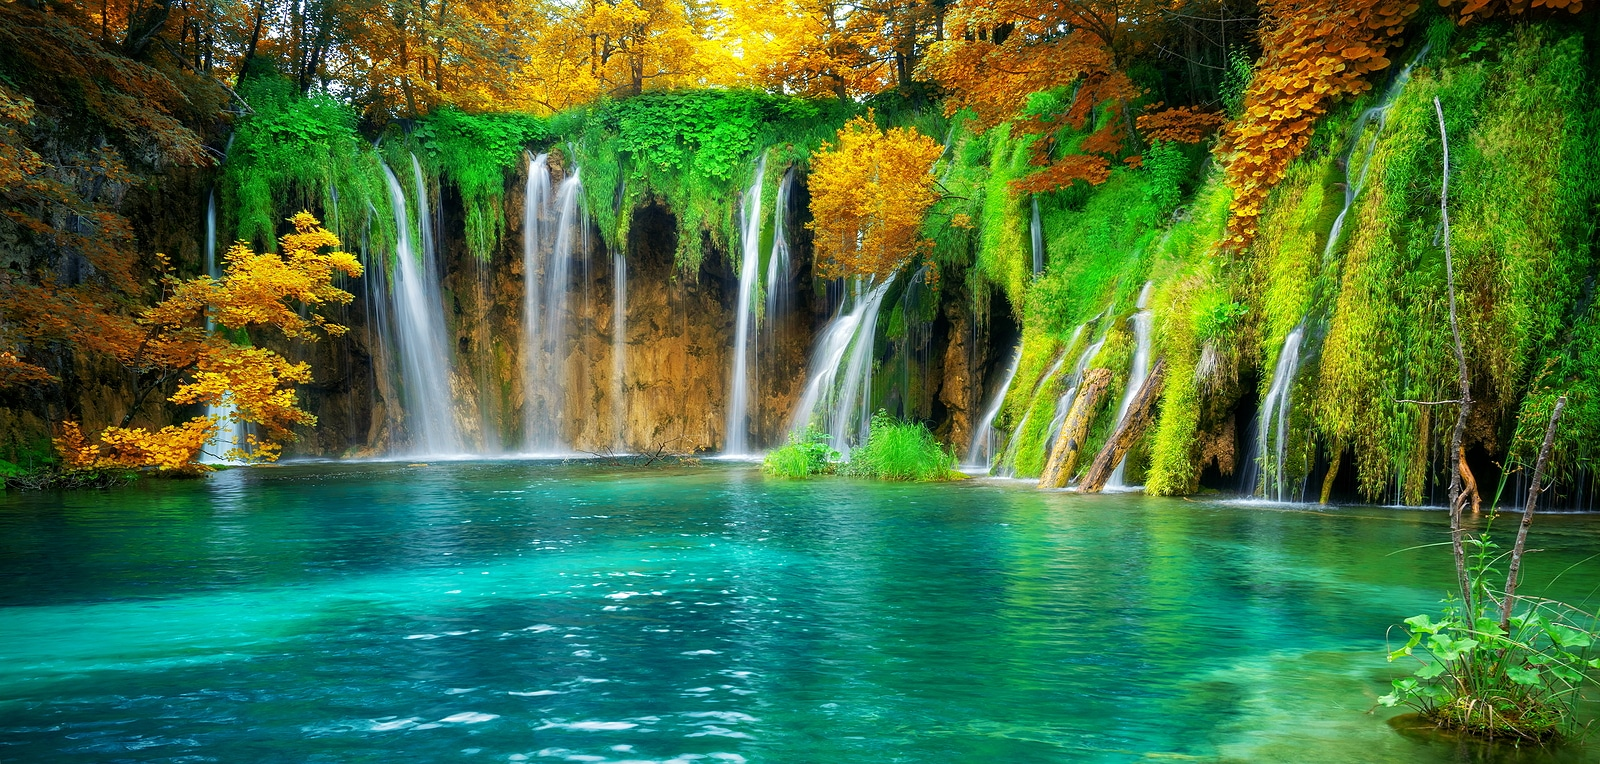 Exotic waterfall and lake landscape of Plitvice Lakes National Park